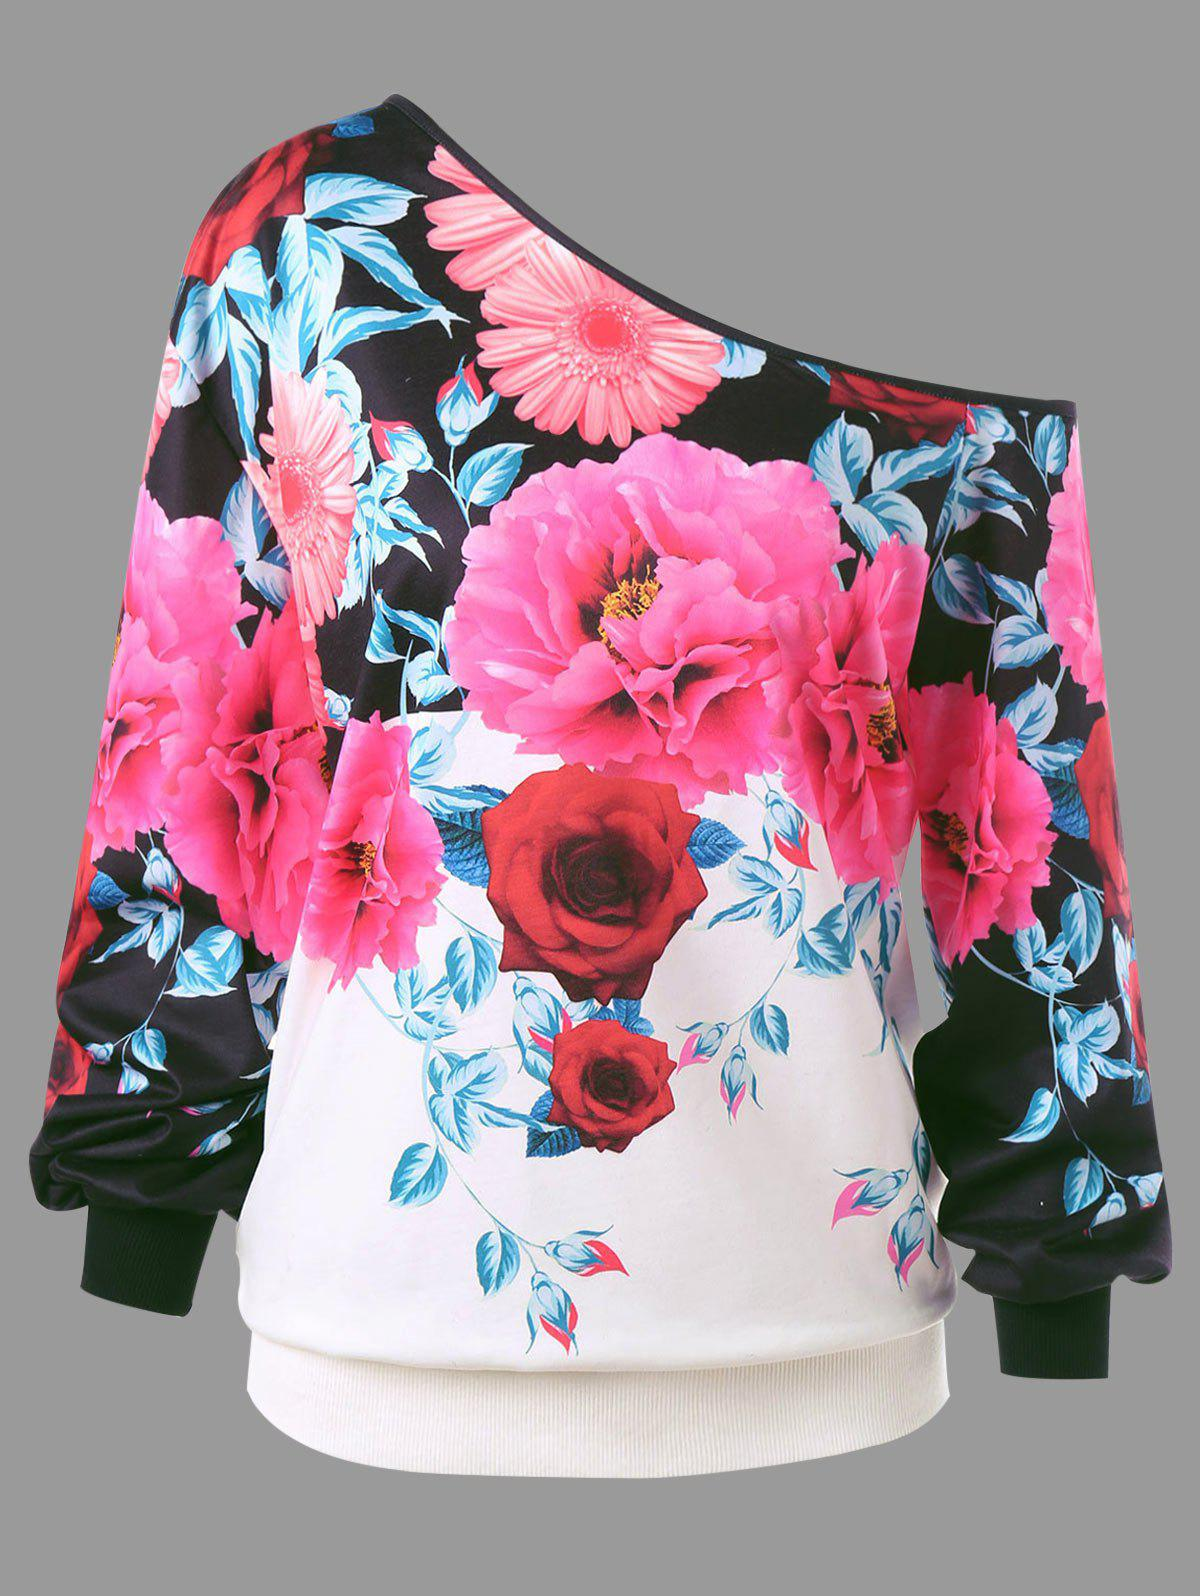 Plus Size Skew Neck Floral Print SweatshirtWOMEN<br><br>Size: 4XL; Color: COLORMIX; Material: Polyester,Spandex; Shirt Length: Regular; Sleeve Length: Full; Style: Fashion; Pattern Style: Floral; Season: Fall; Weight: 0.3000kg; Package Contents: 1 x Sweatshirt;